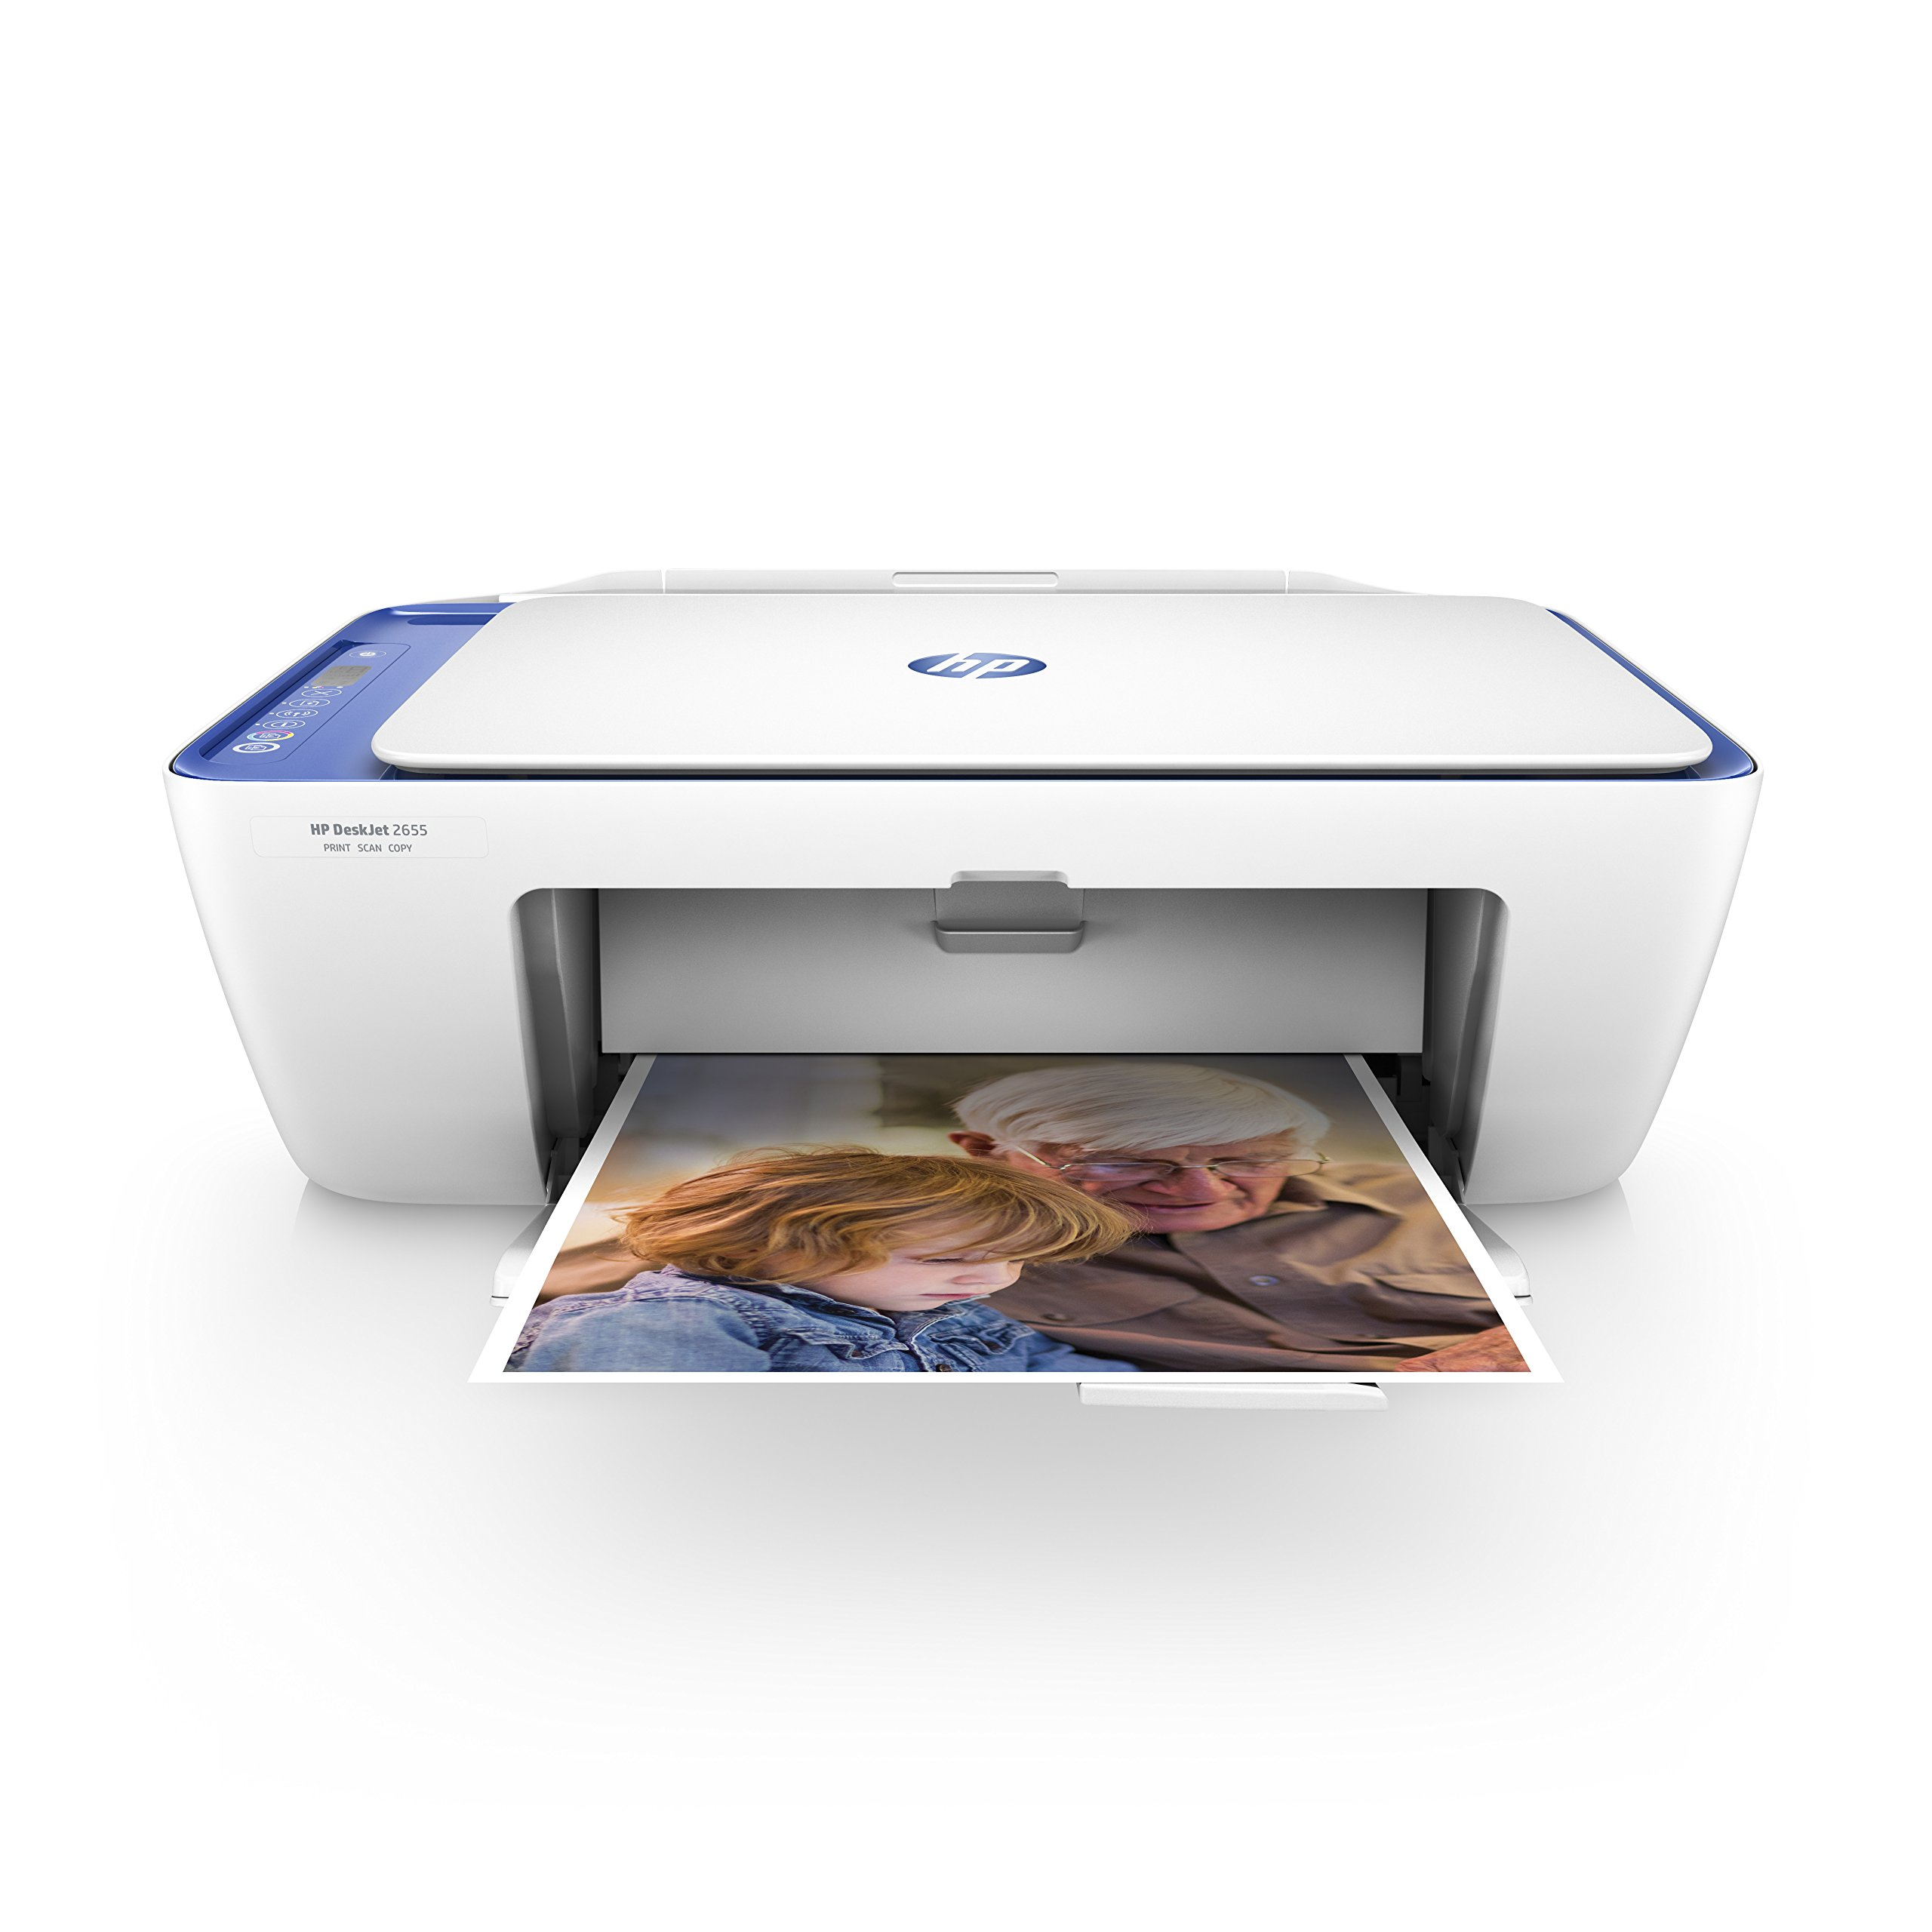 HP DeskJet 2655 All-in-One Compact Printer, HP Instant Ink & Amazon Dash Replenishment Ready - Noble Blue(V1N01A)